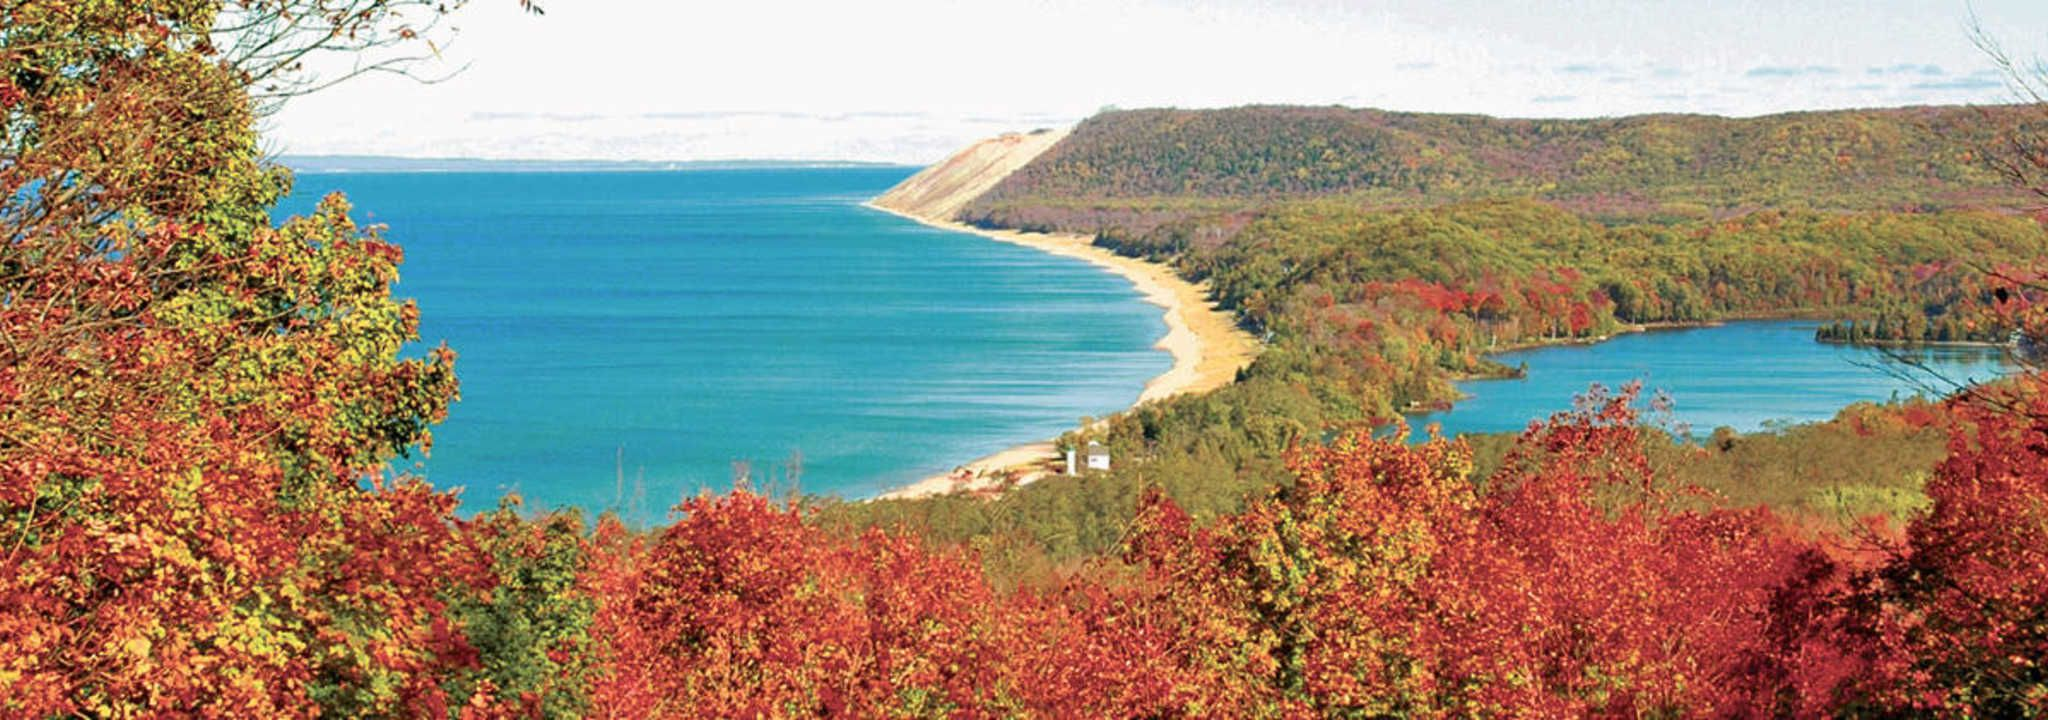 Fall Is The Perfect Time To Experience The Sleeping Bear Dunes In Traverse City Michigan Learn About The Park S Sleeping Bear Dunes Traverse City Fall Travel